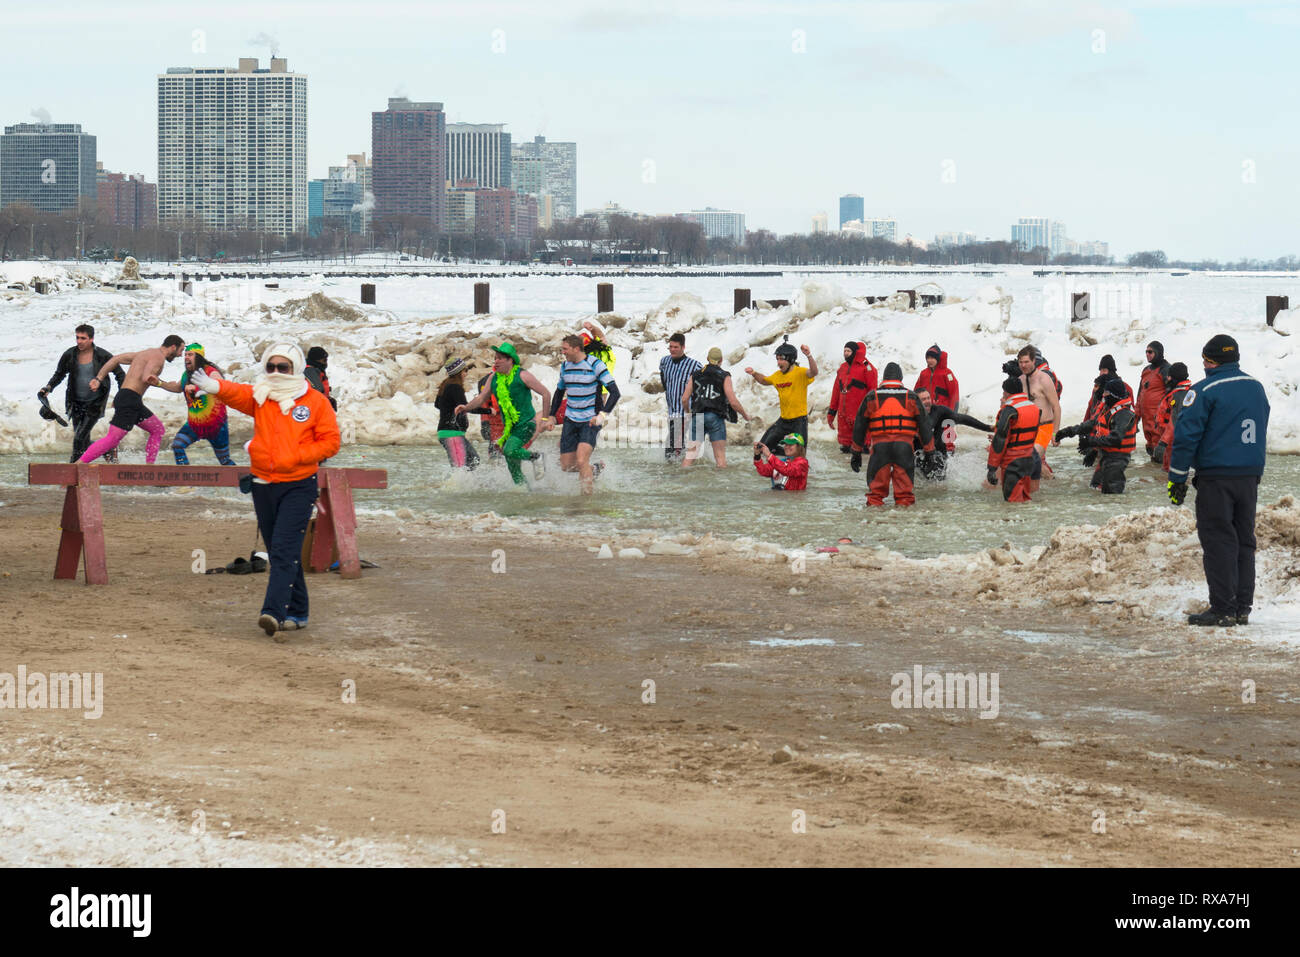 Chicago, IL  - March 2, 2014 - hundreds of brave Chicagoans showed up to jump into the freezing lake Michigan water at the Annual Polar Plunge event a - Stock Image